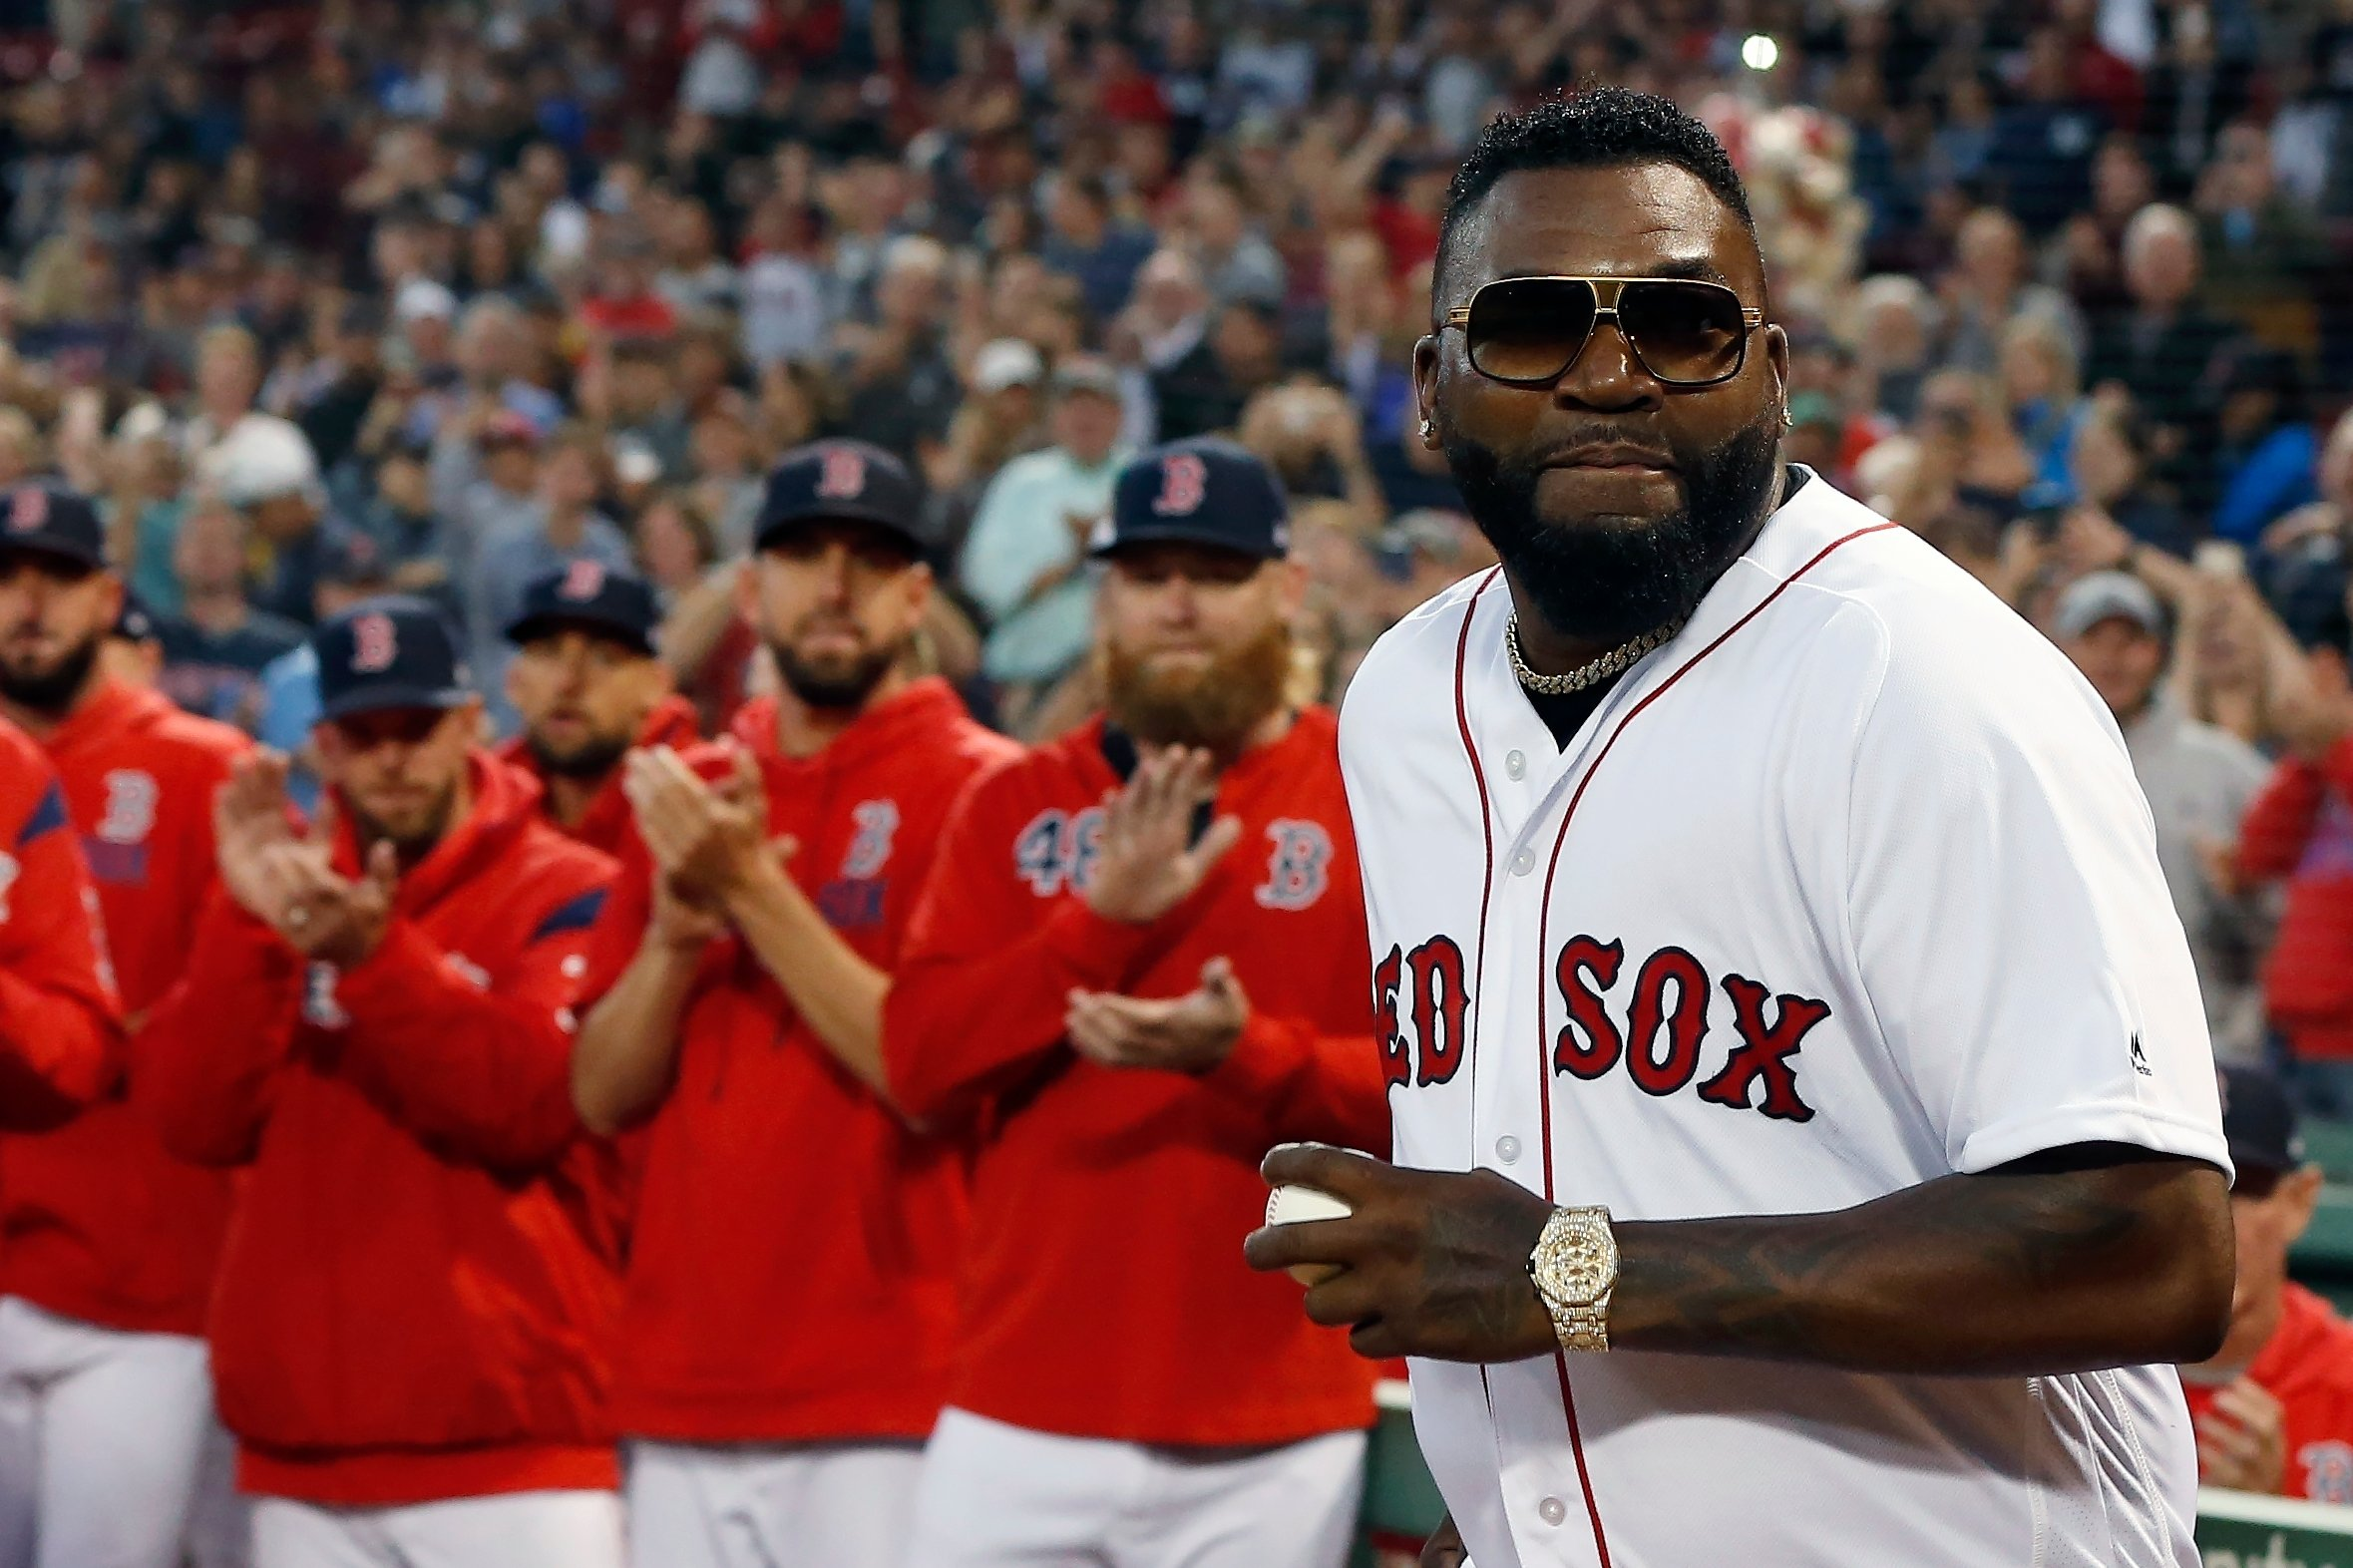 Emotivo regreso de David Ortiz en Fenway Park